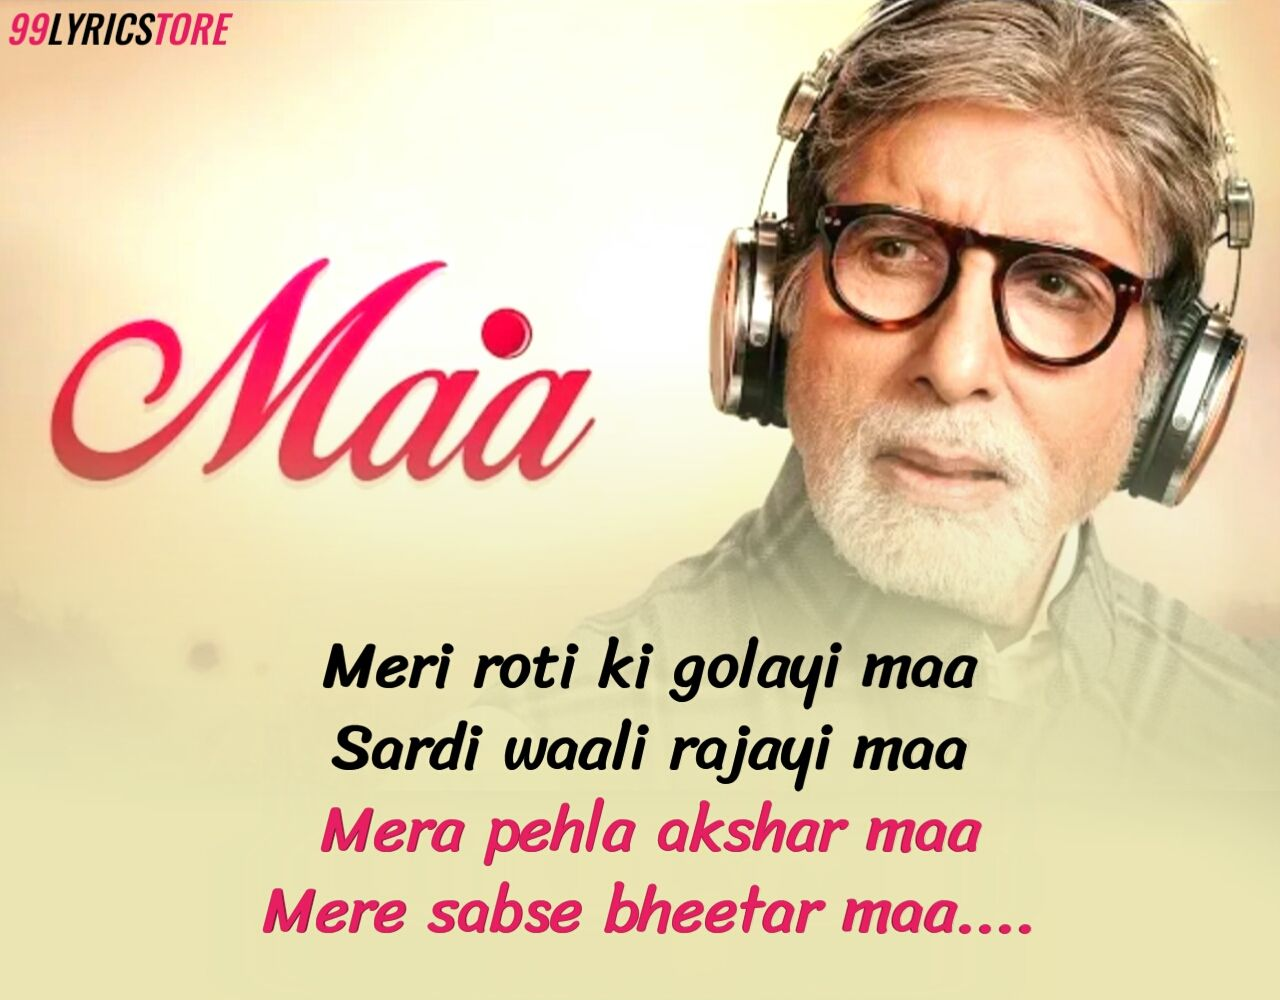 Maa Hindi Song Lyrics sung by Amitabh Bachchan